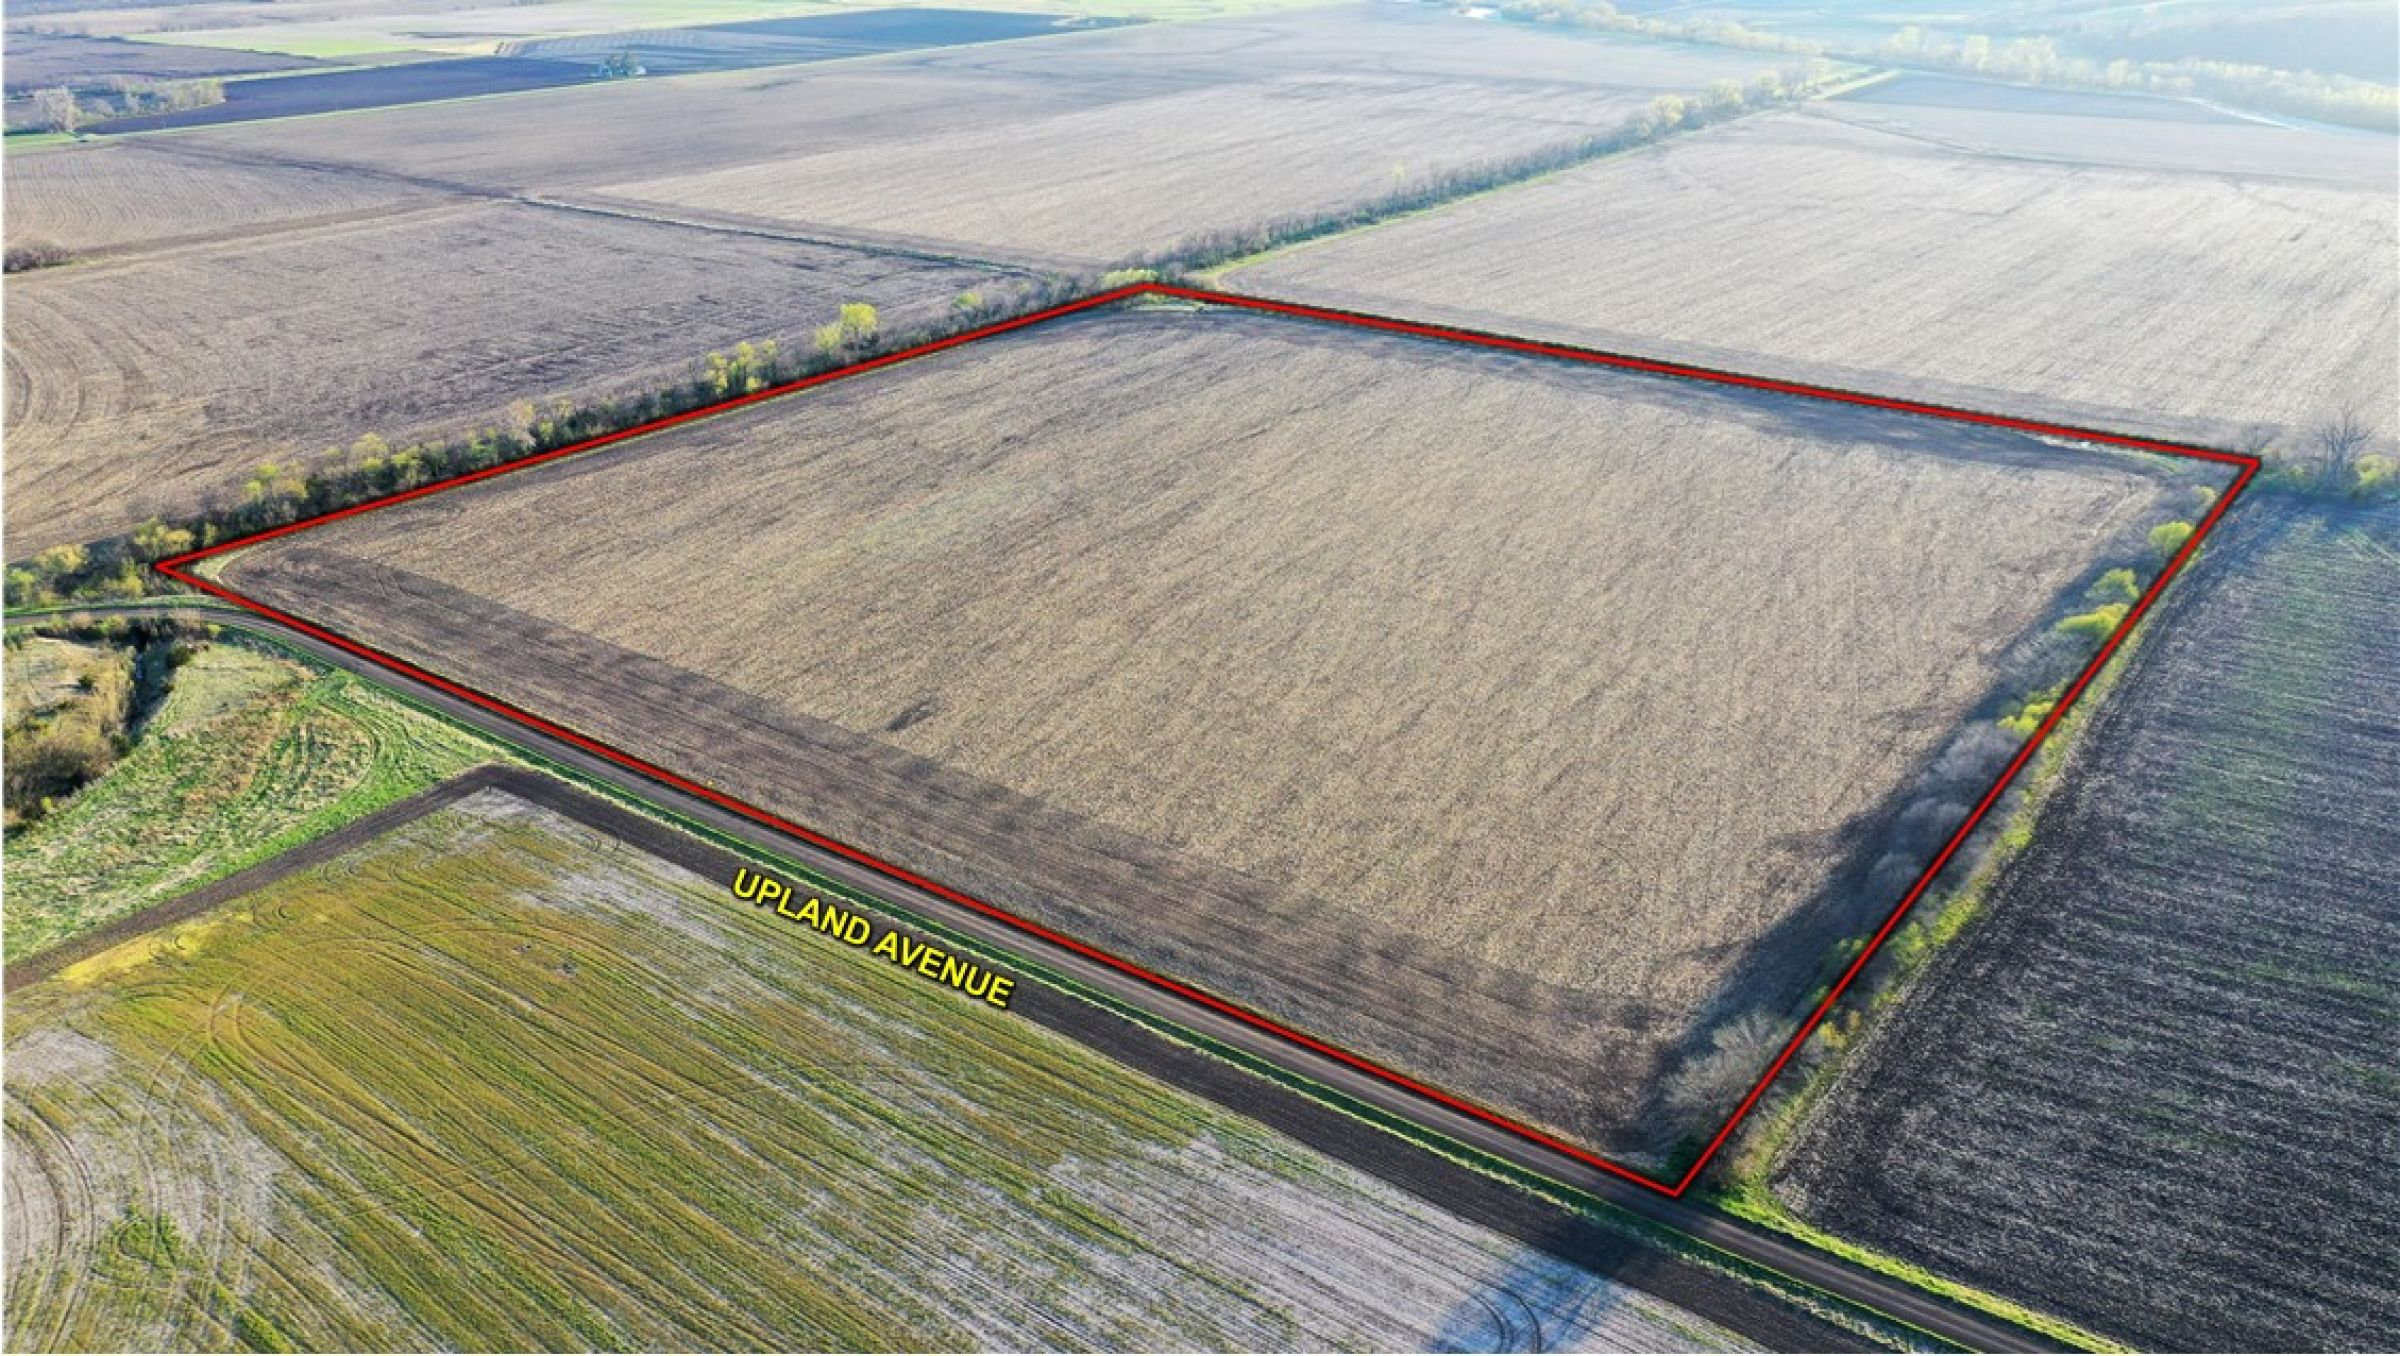 land-page-county-iowa-40-acres-listing-number-14981-3-2020-04-28-184118.jpg